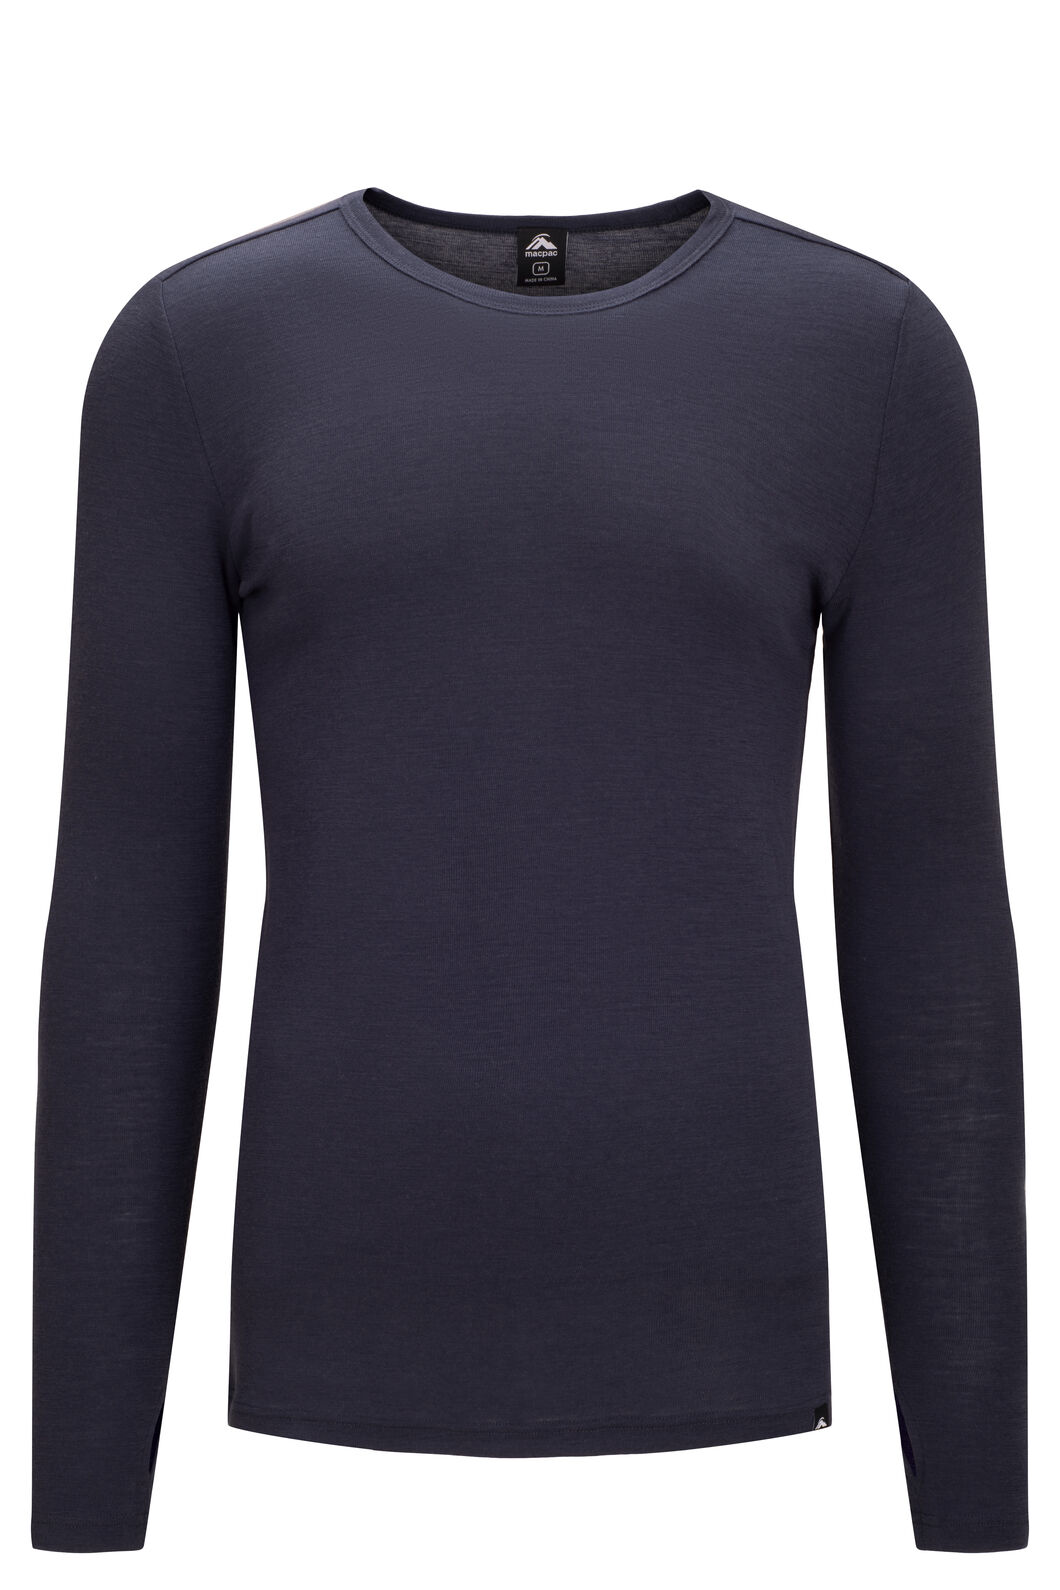 Macpac 220 Merino Long Sleeve Top — Men's, BLUE NIGHTS, hi-res